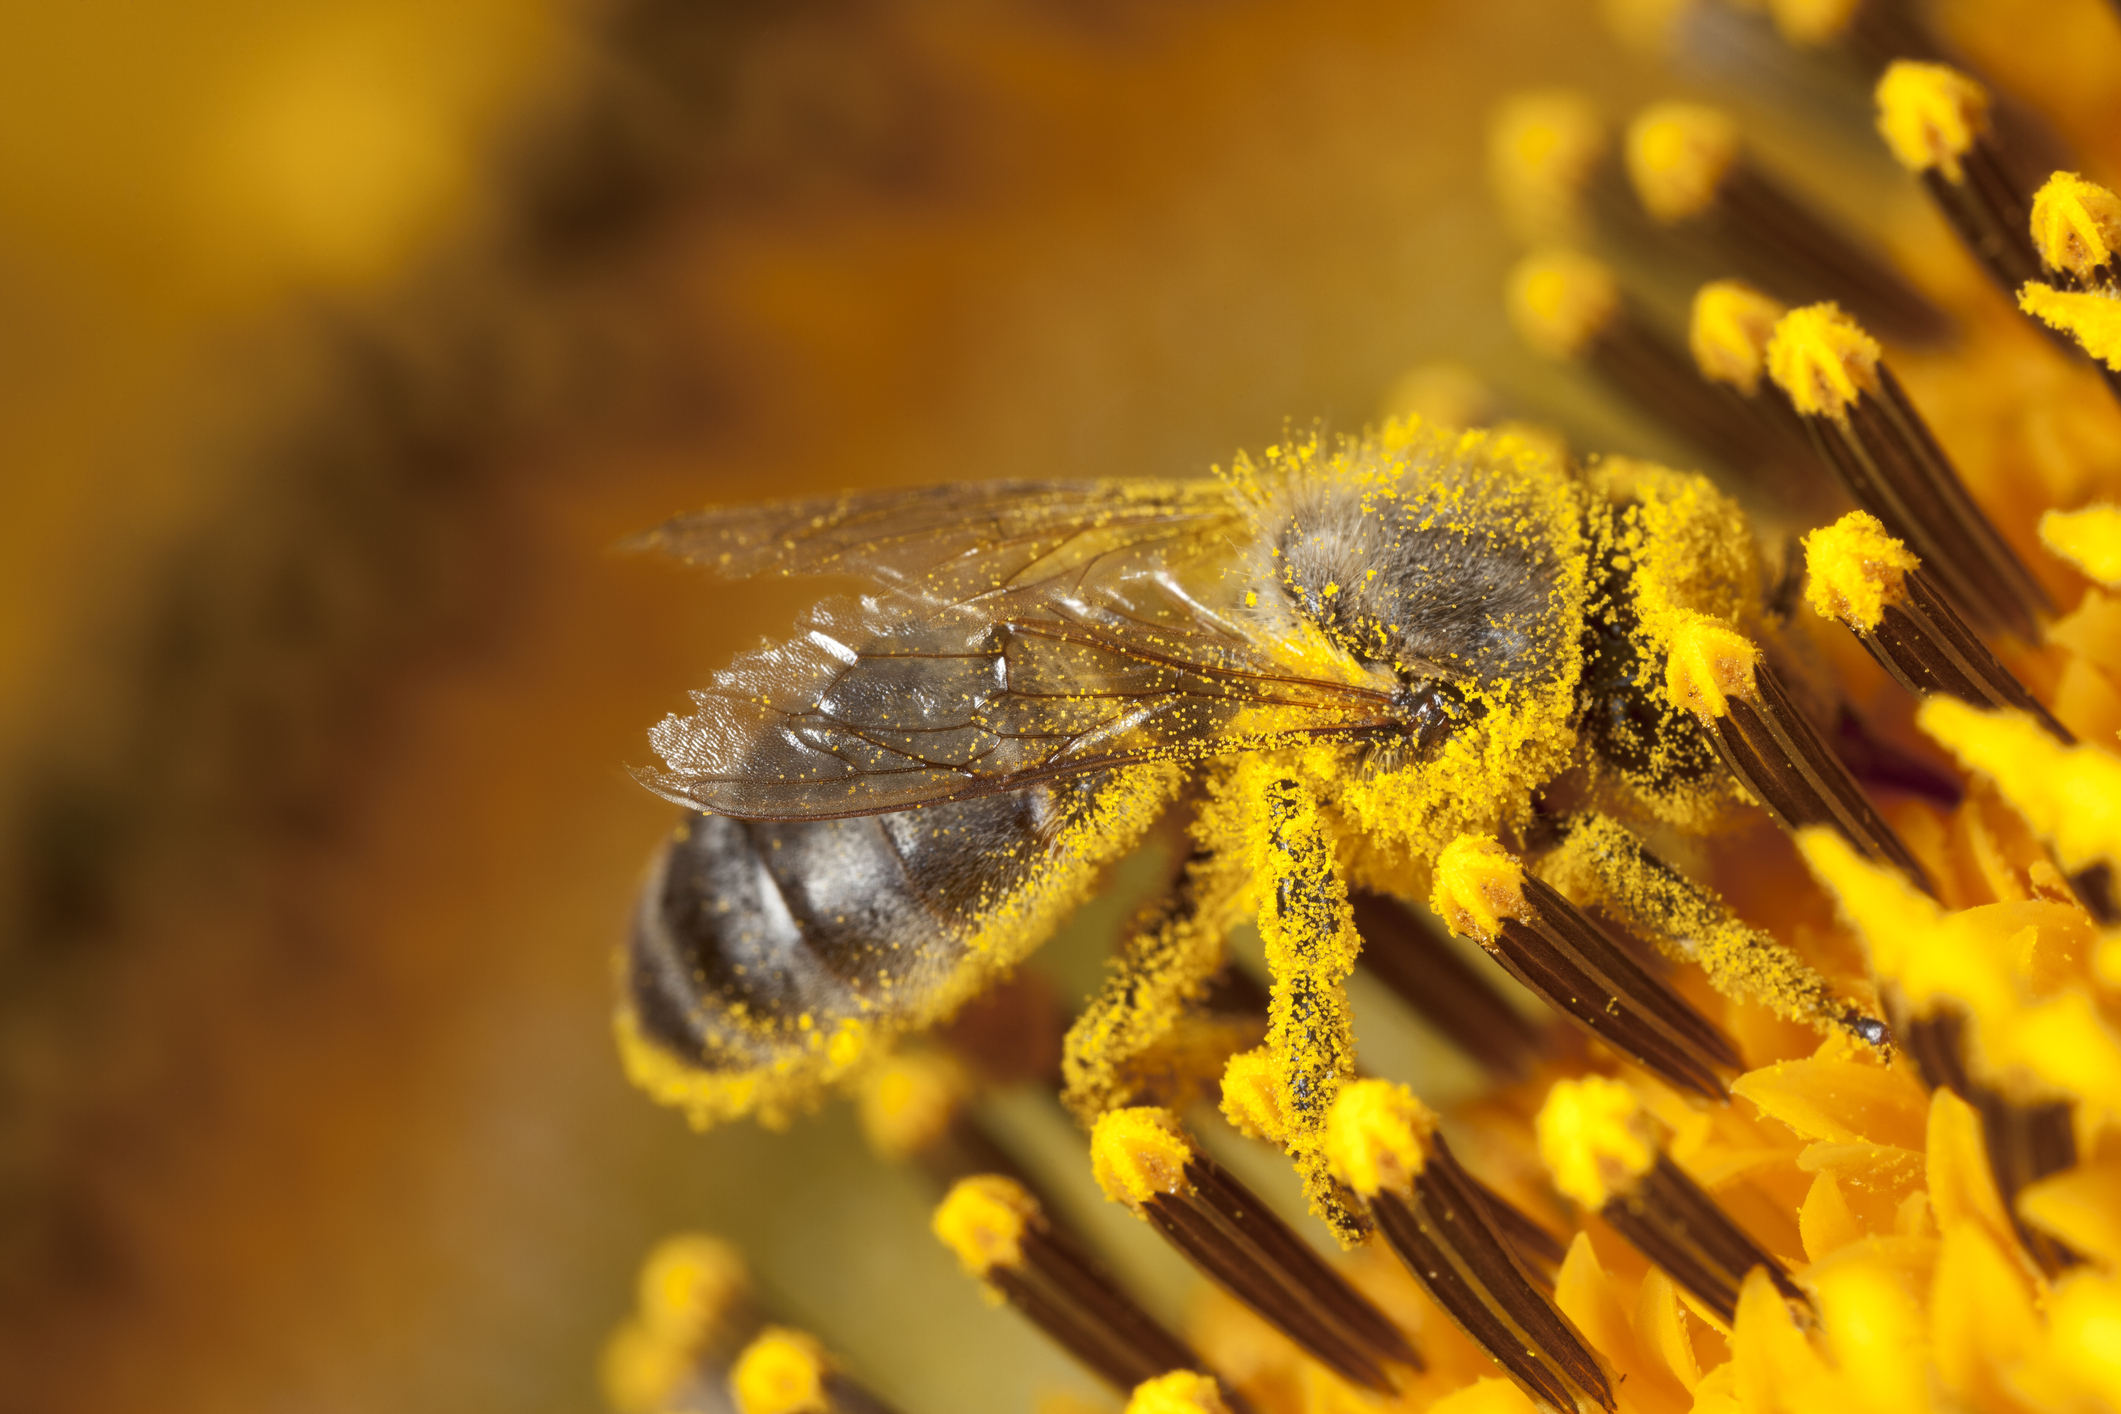 Paving the way for more pollinators